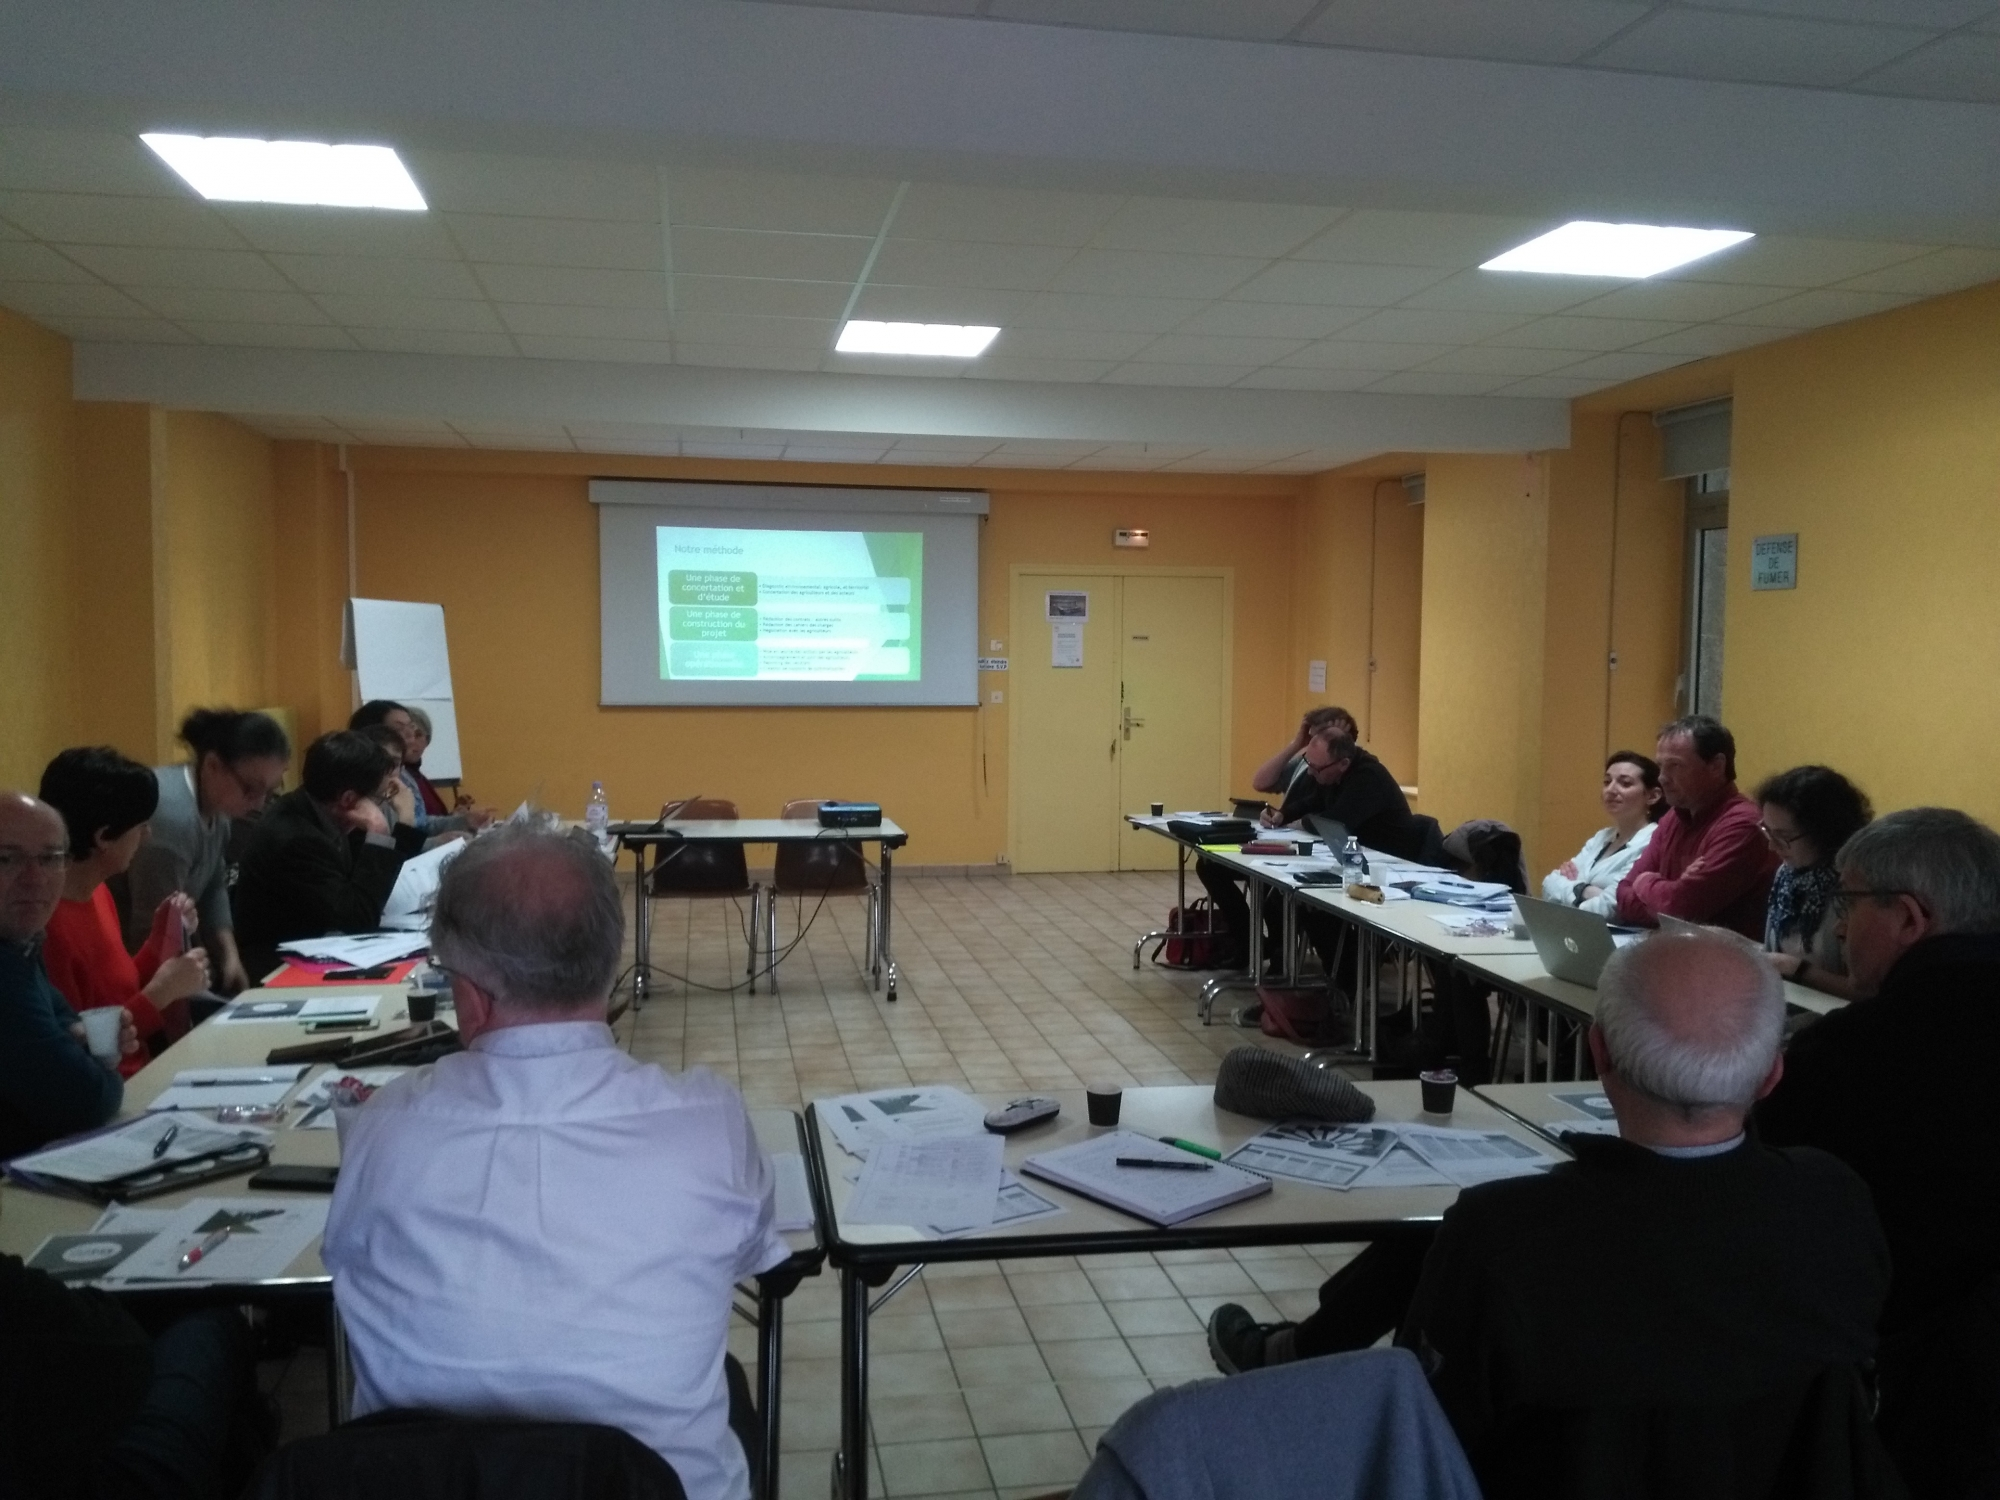 Participation of the Interreg CPES partners in the Environment Committee of the Brittany Chamber of Agriculture's session on PES